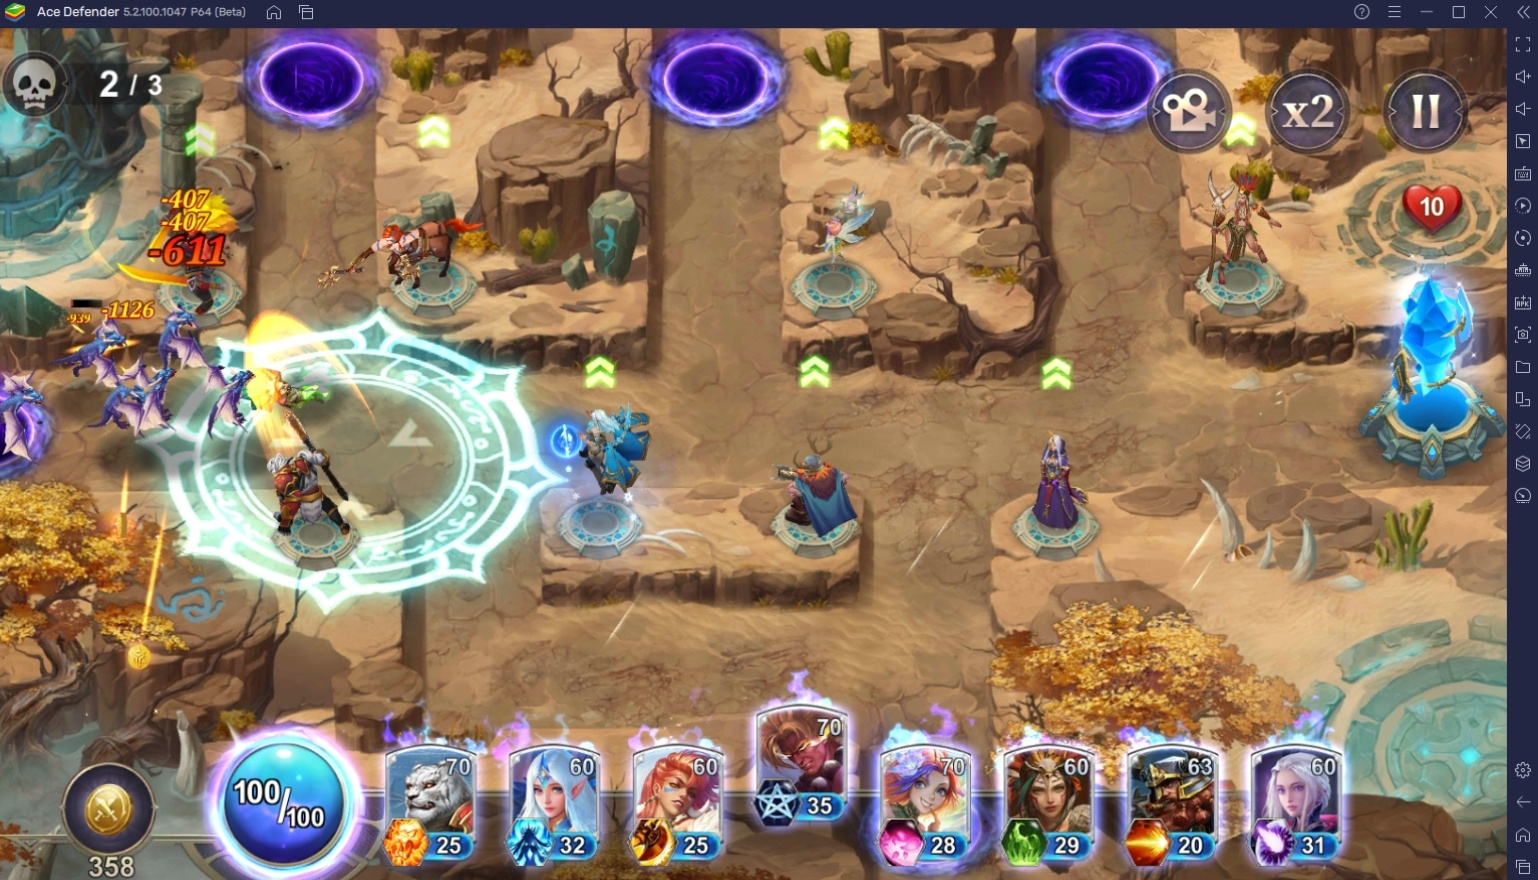 Advanced Tower Defense Strategies for Ace Defender